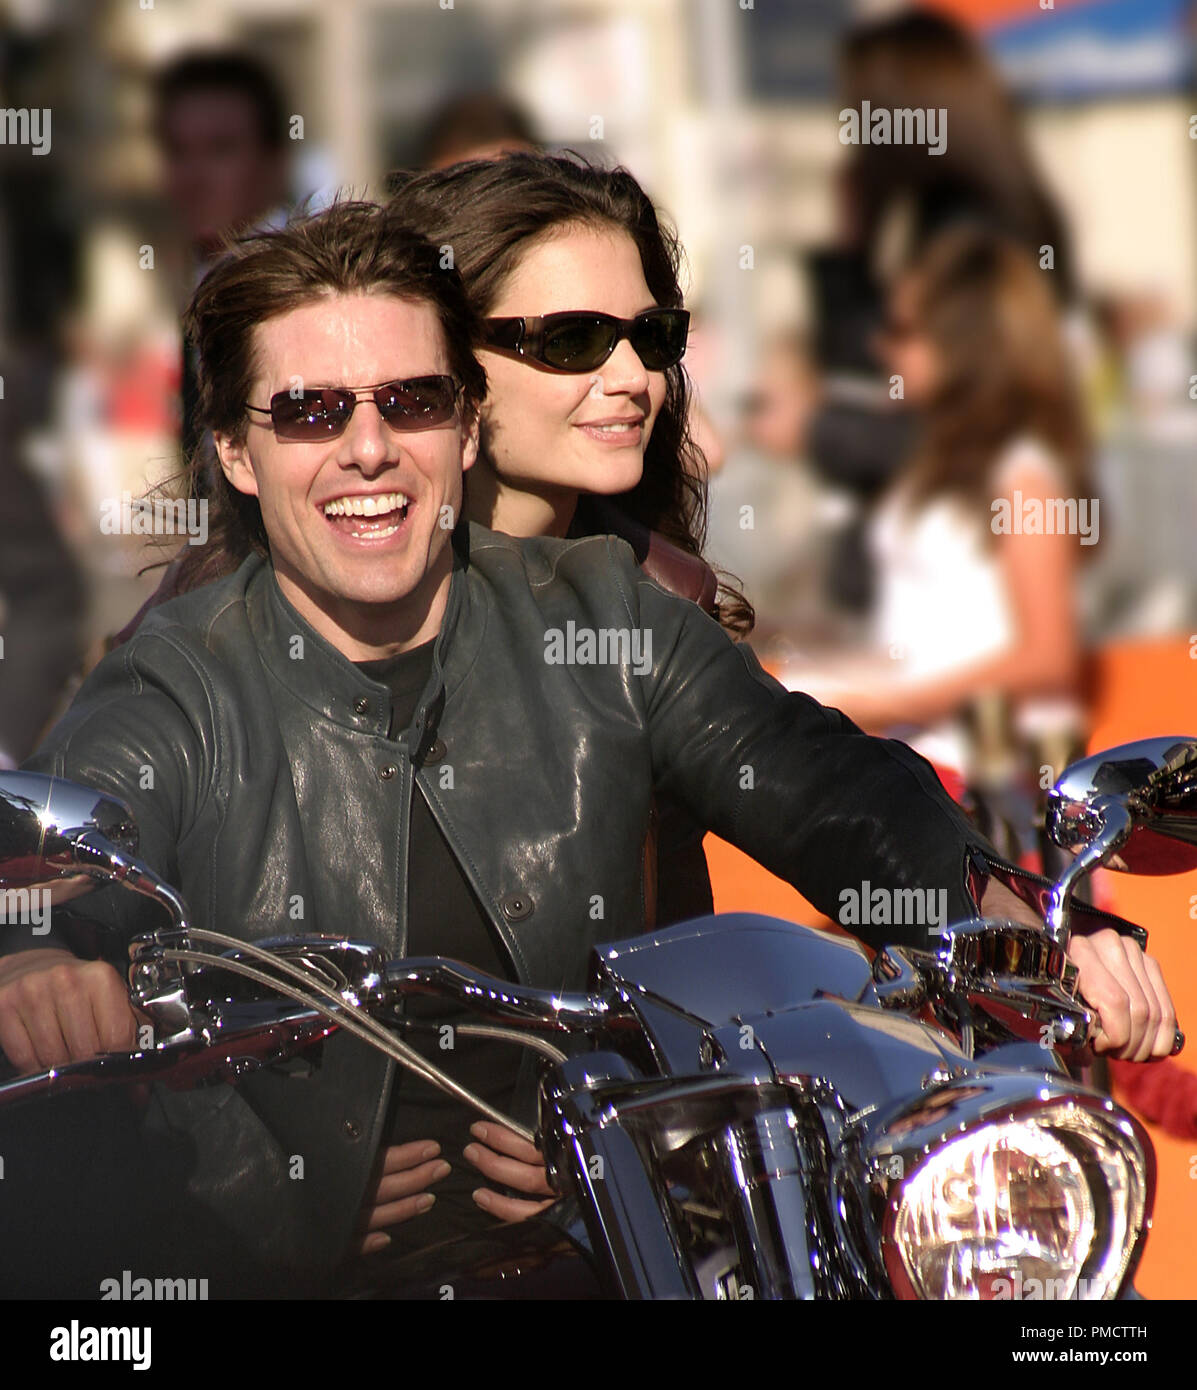 017dfc911b9f Tom Cruise Katie Holmes Sunglasses Stock Photos   Tom Cruise Katie ...